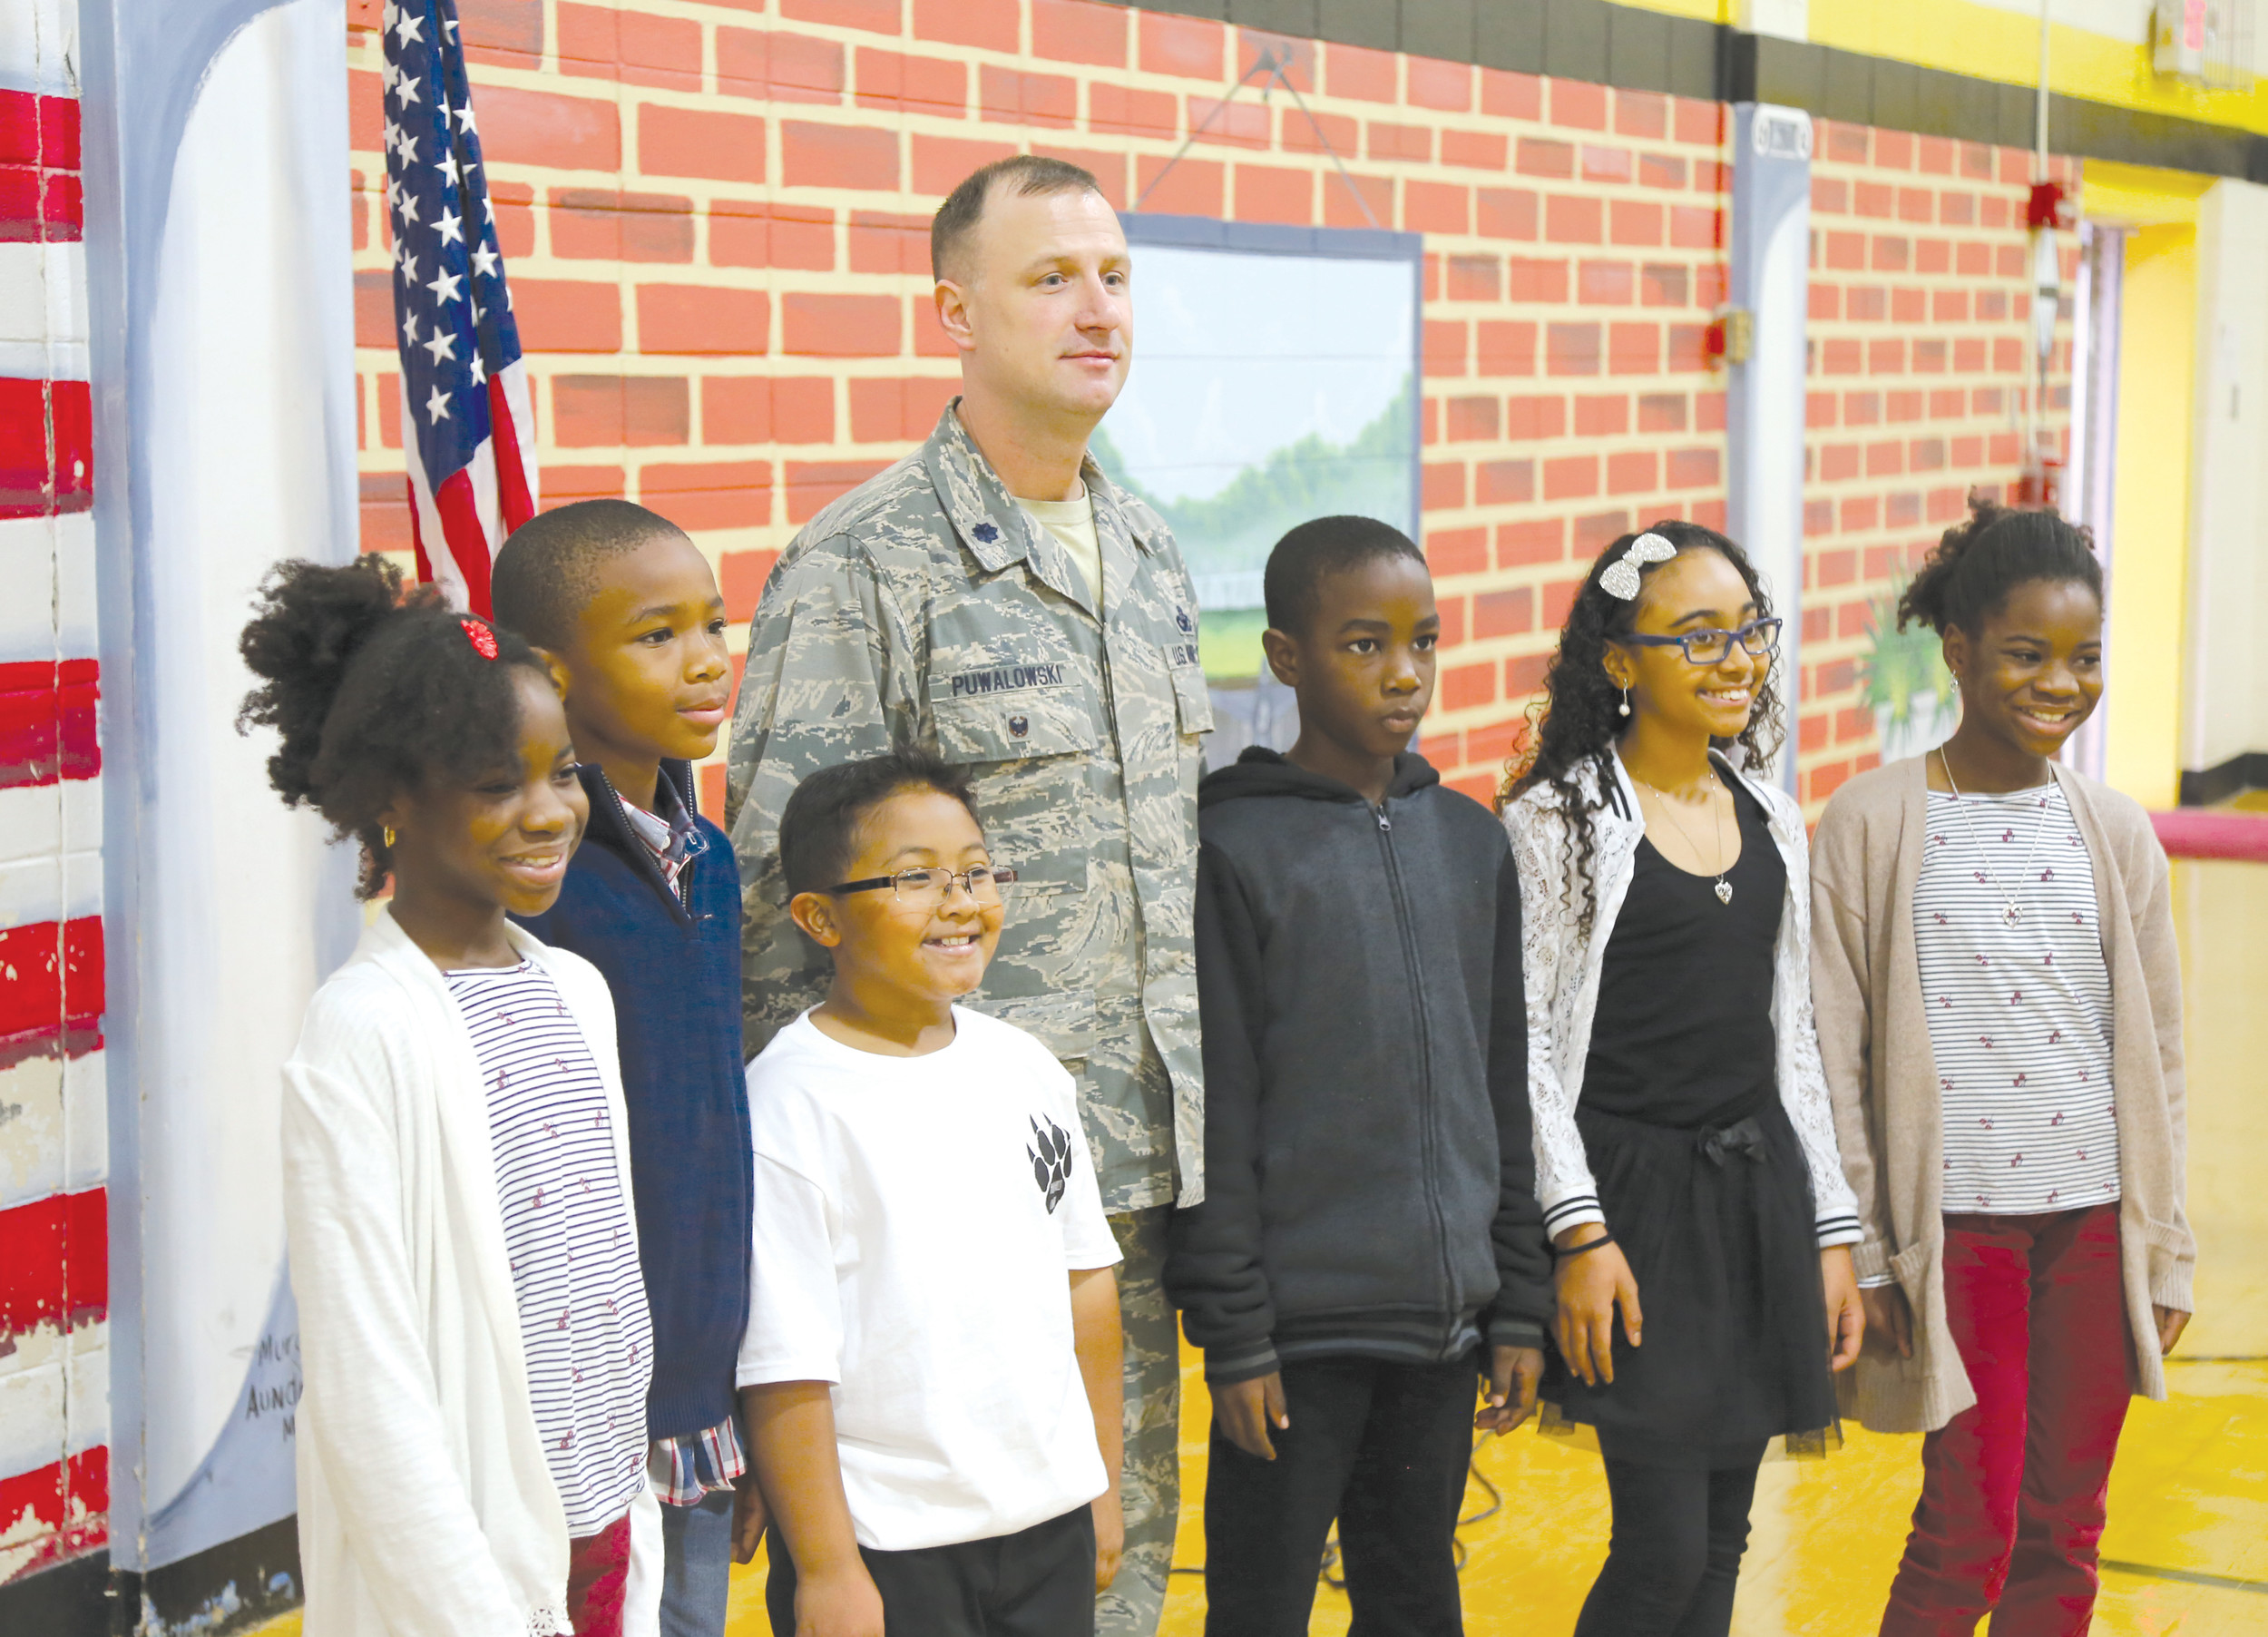 Shaw airman Lt. Col. Nathan Puwalowski poses with students from High Hills Elementary on Thursday during the school's Veterans Day program. Puwalowski was the keynote speaker for the event.